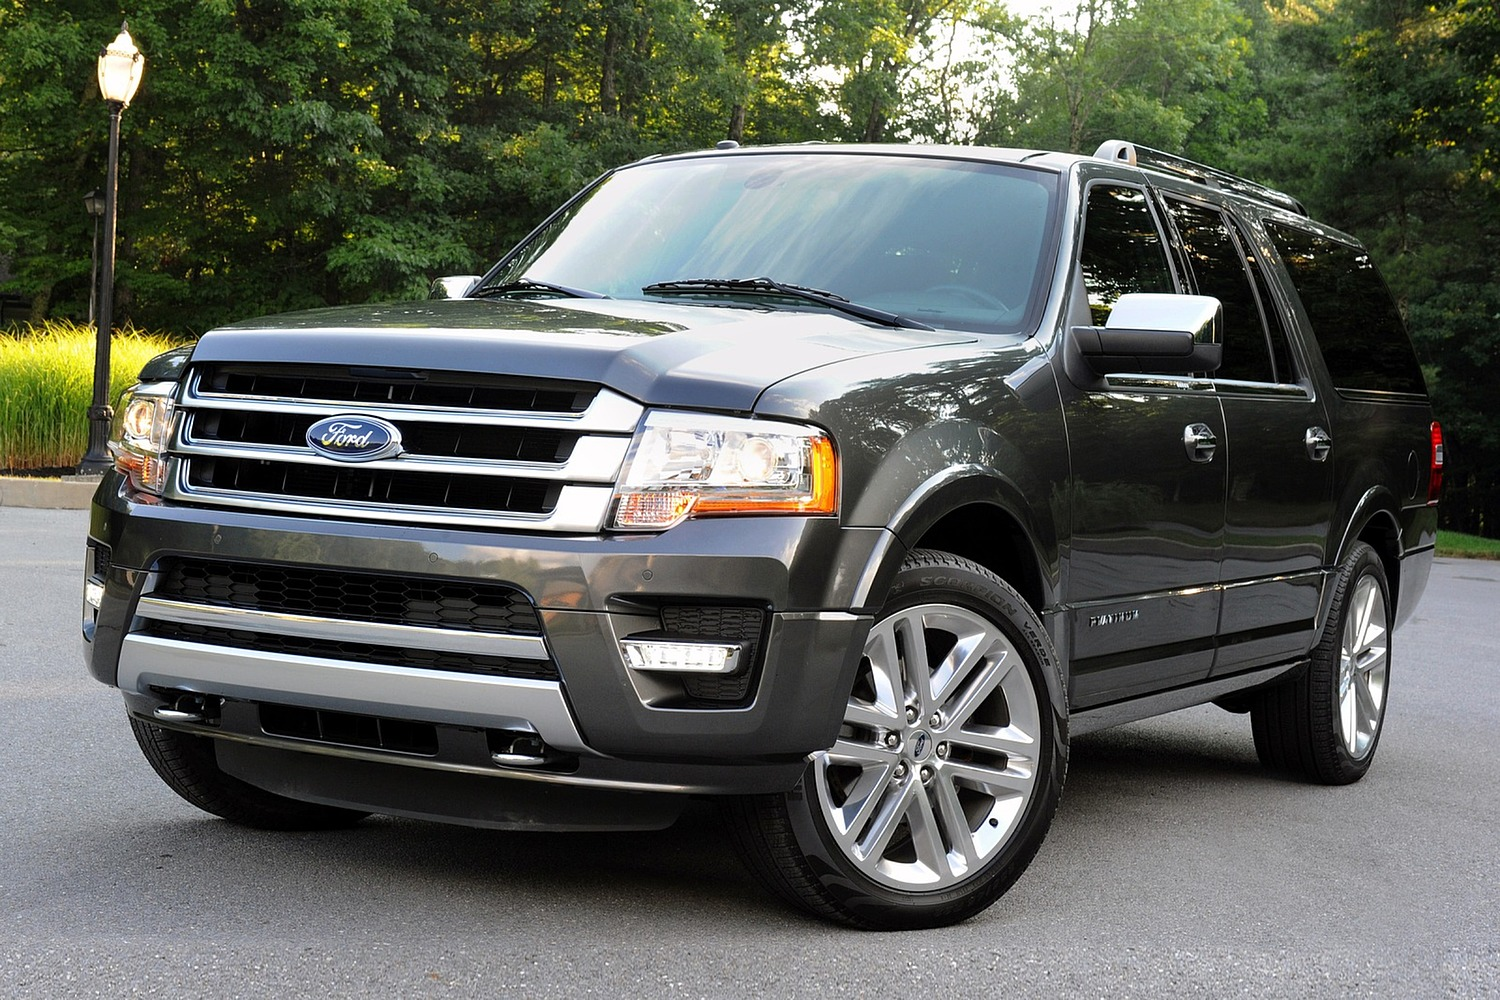 Ford Expedition EL Platinum 4dr SUV Exterior Shown (2015 model year shown)